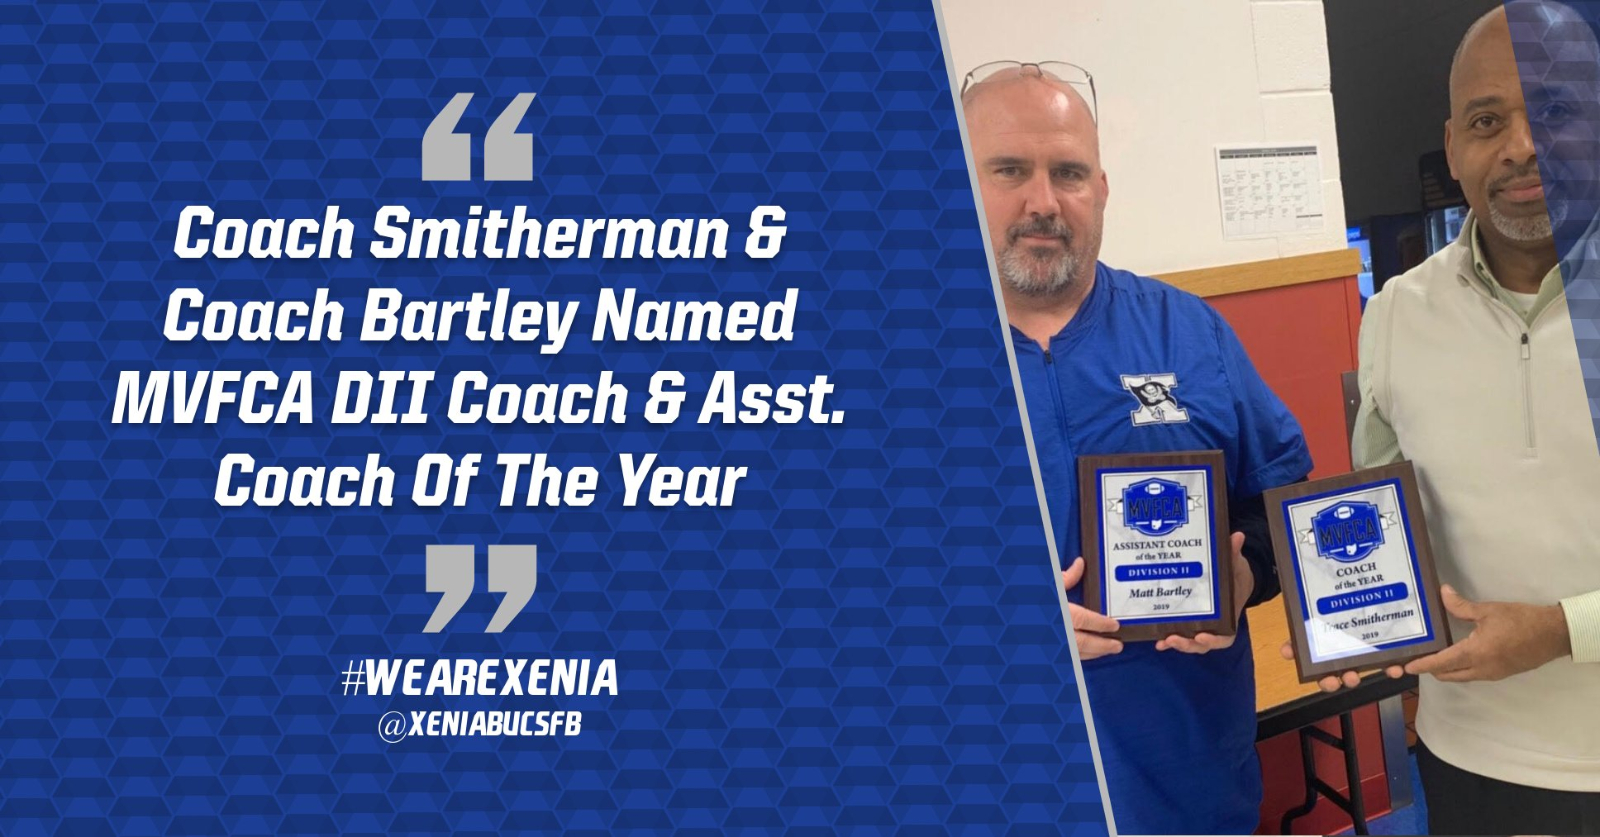 Coach Smitherman And Coach Bartley Named Coaches Of The Year By MVFCA